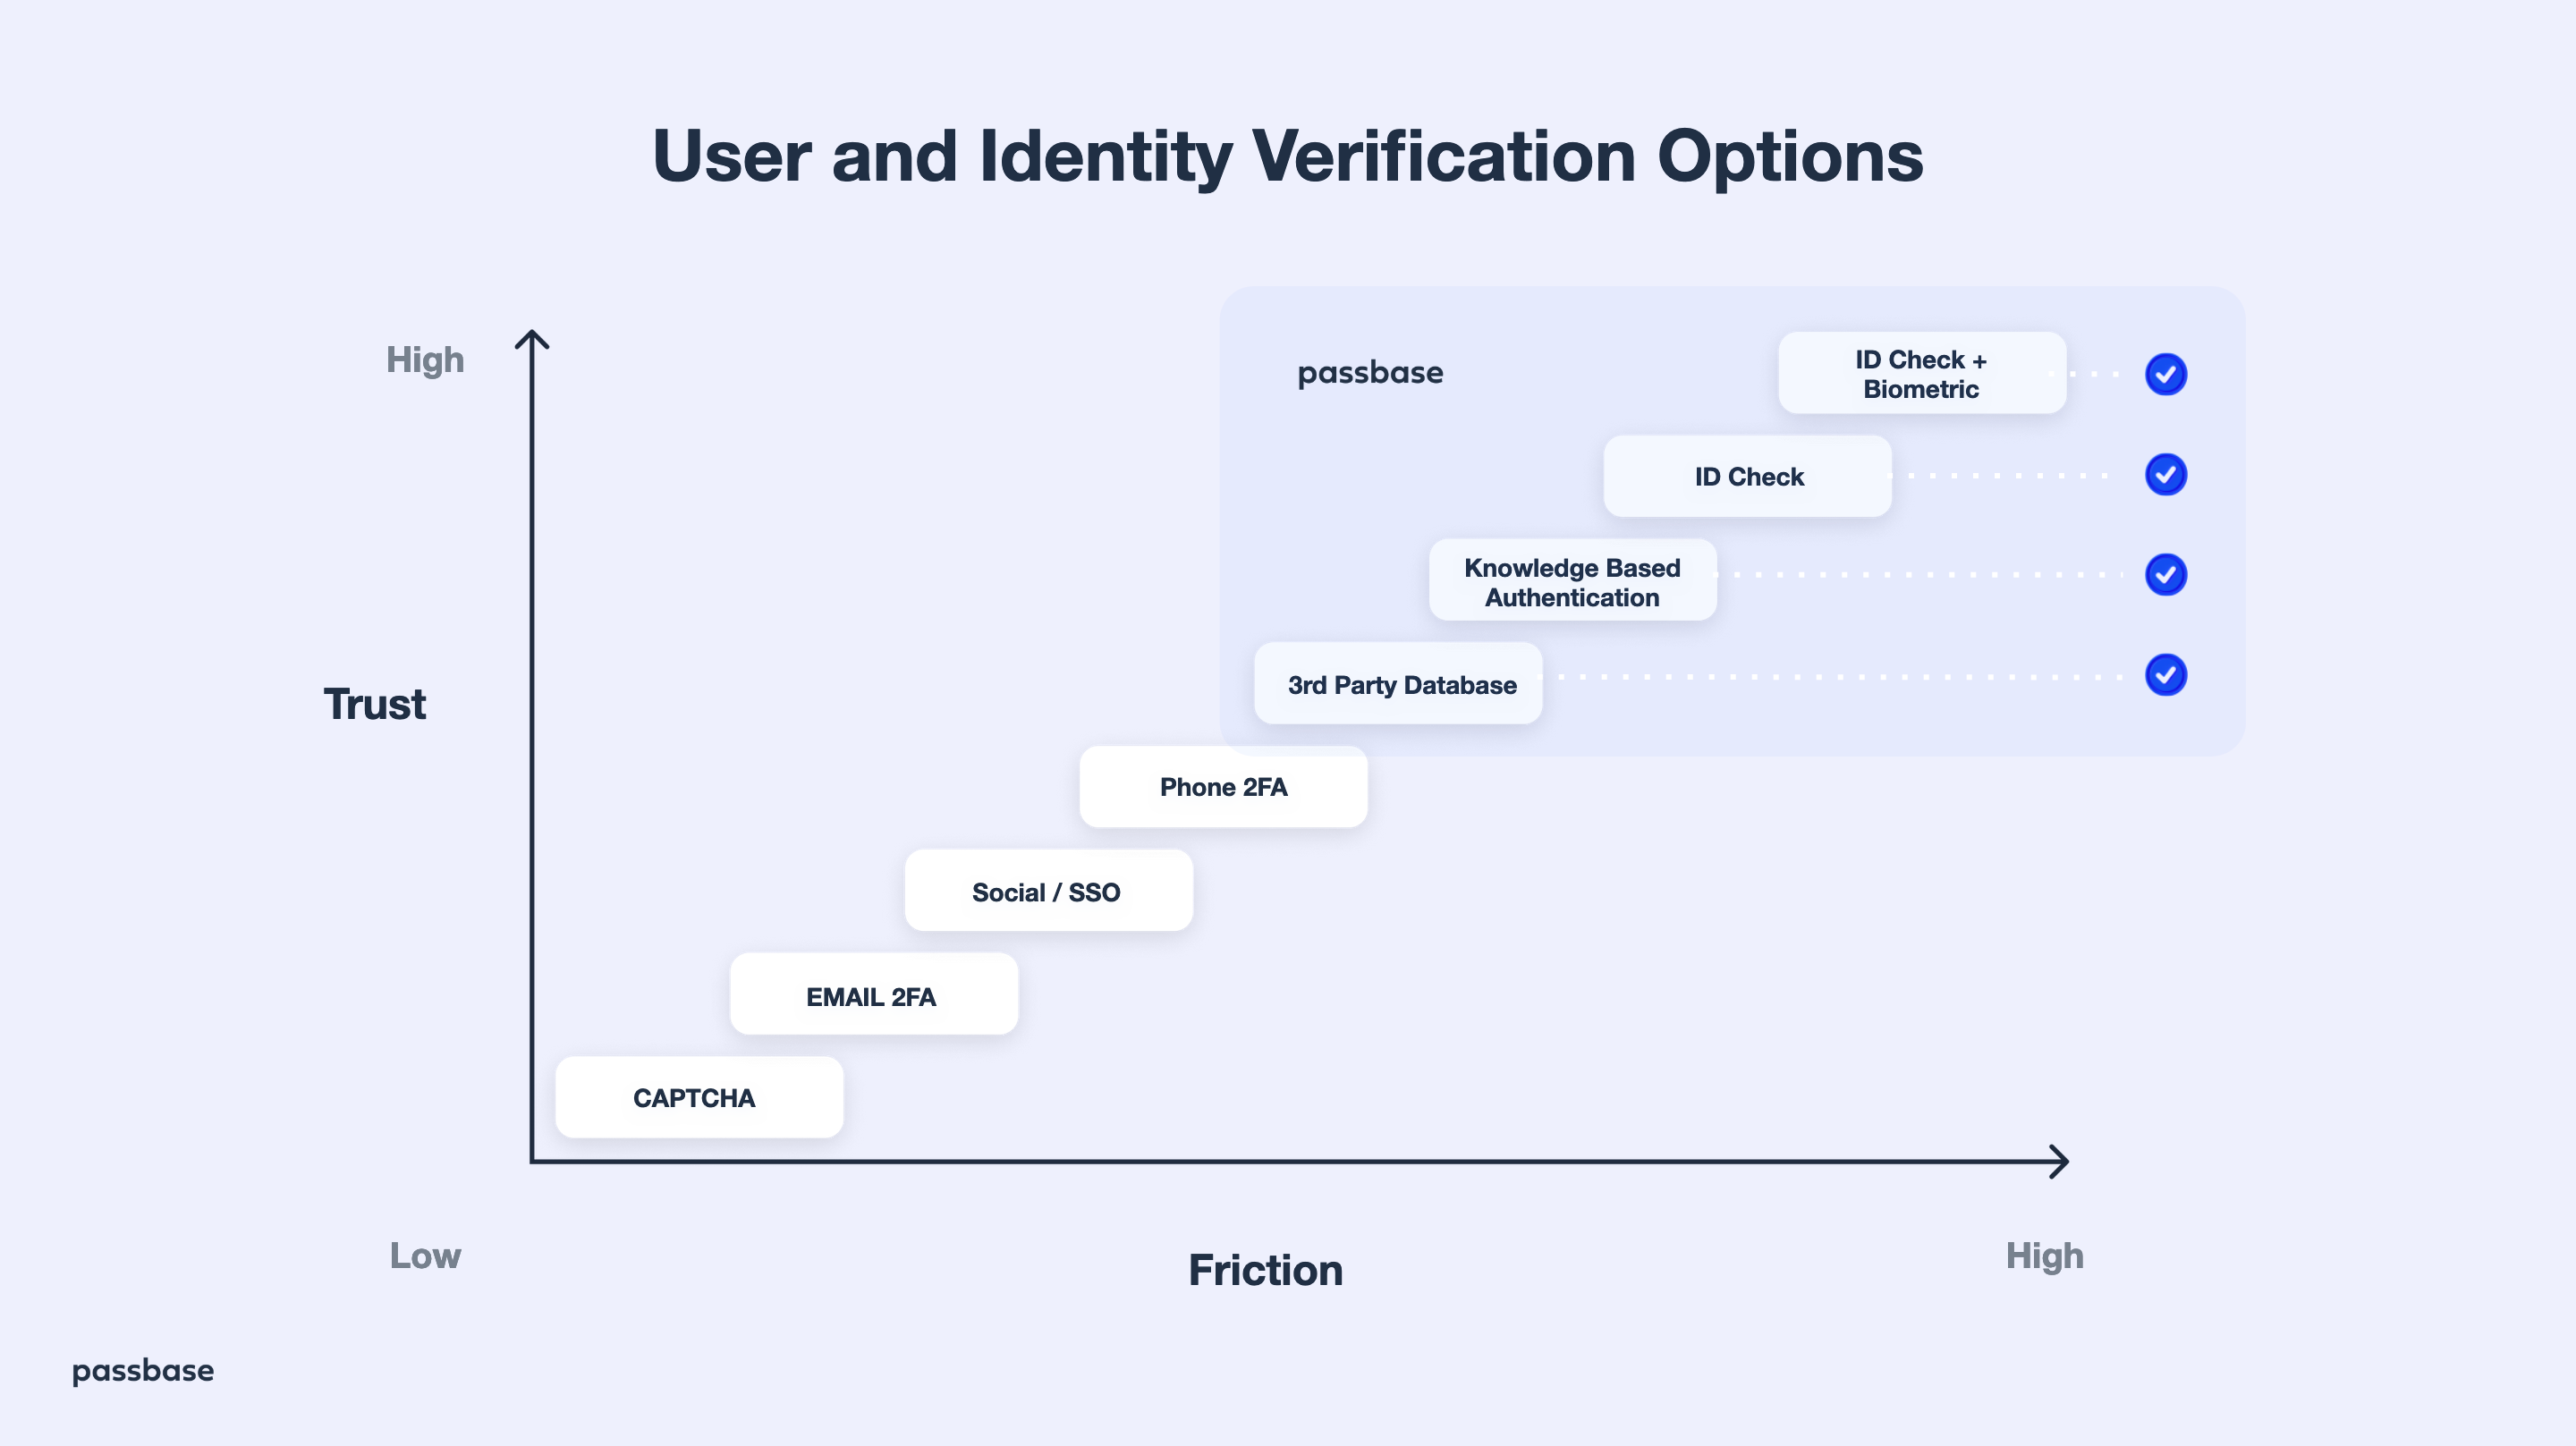 A chart for user and identity verification options that has trust on the vertical axis on the left and Friction on the horizontal axis on at the bottom. Beginning at the bottom left corner with low trust and friction moving towards the top right corner with high trust nd high friction the options are  CAPTCHA, E-mail 2FA, Social/SSO, Phone 2FA, 3rd party database, knowledge based authentication, ID check, ID check and biometrics